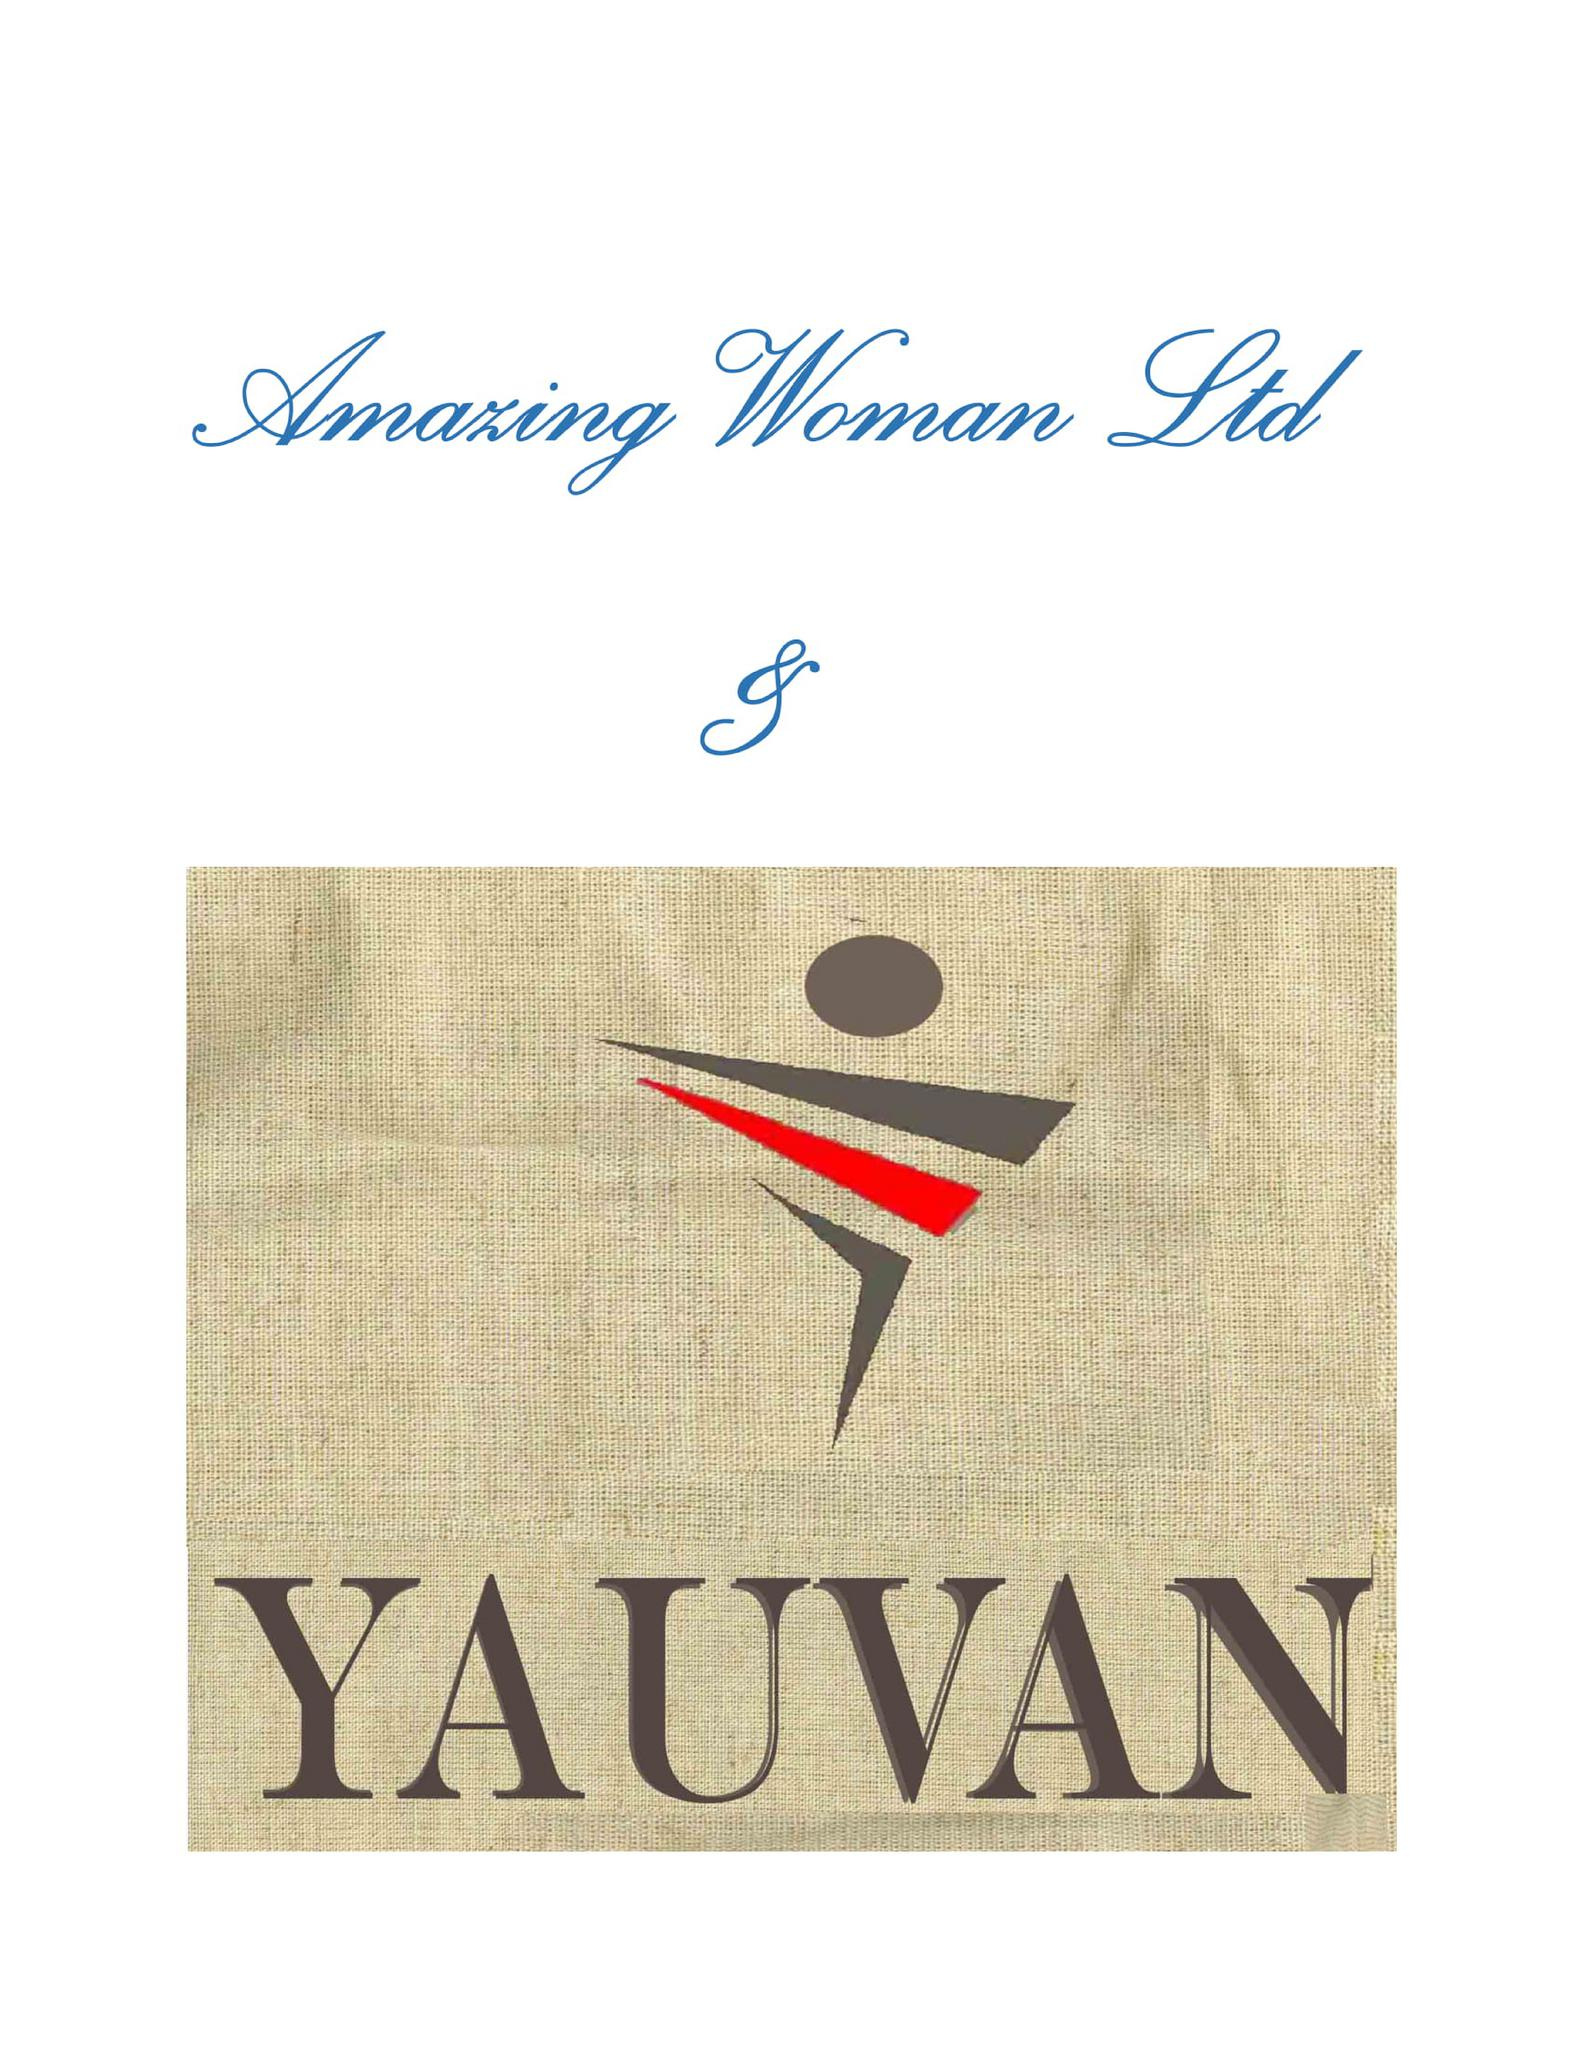 Amazing Women Ltd. & Yauvan